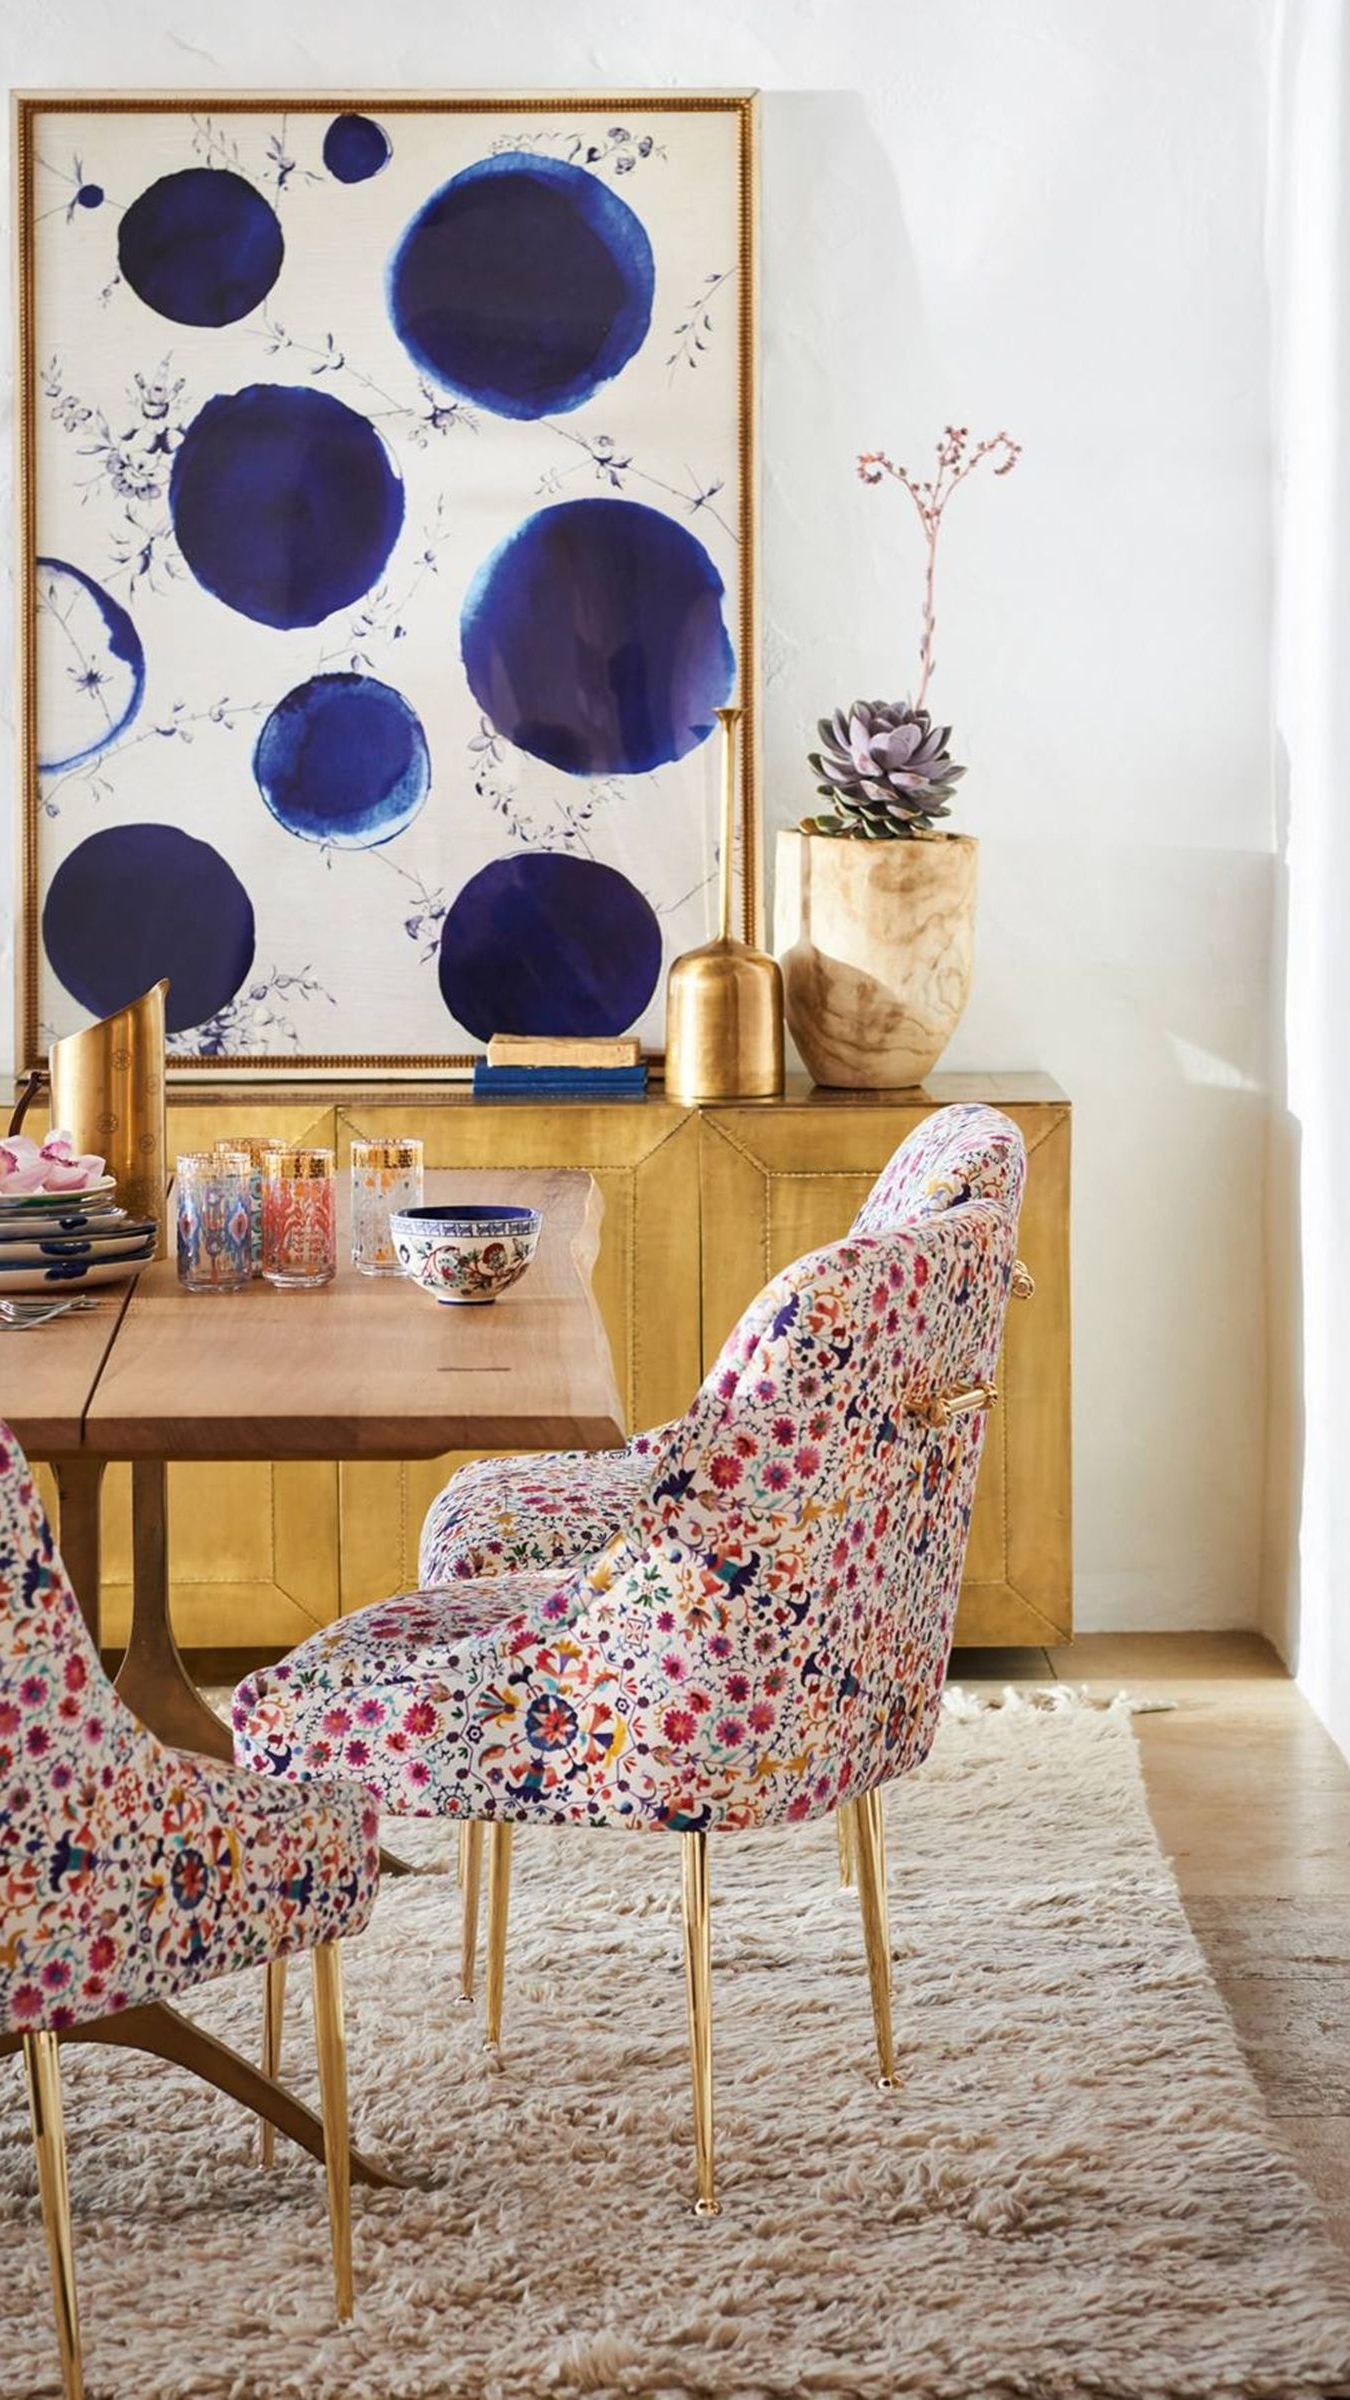 Artfully Walls Anthropologie Exclusive Art Collection Pertaining To Fashionable Artfully Walls (View 2 of 15)